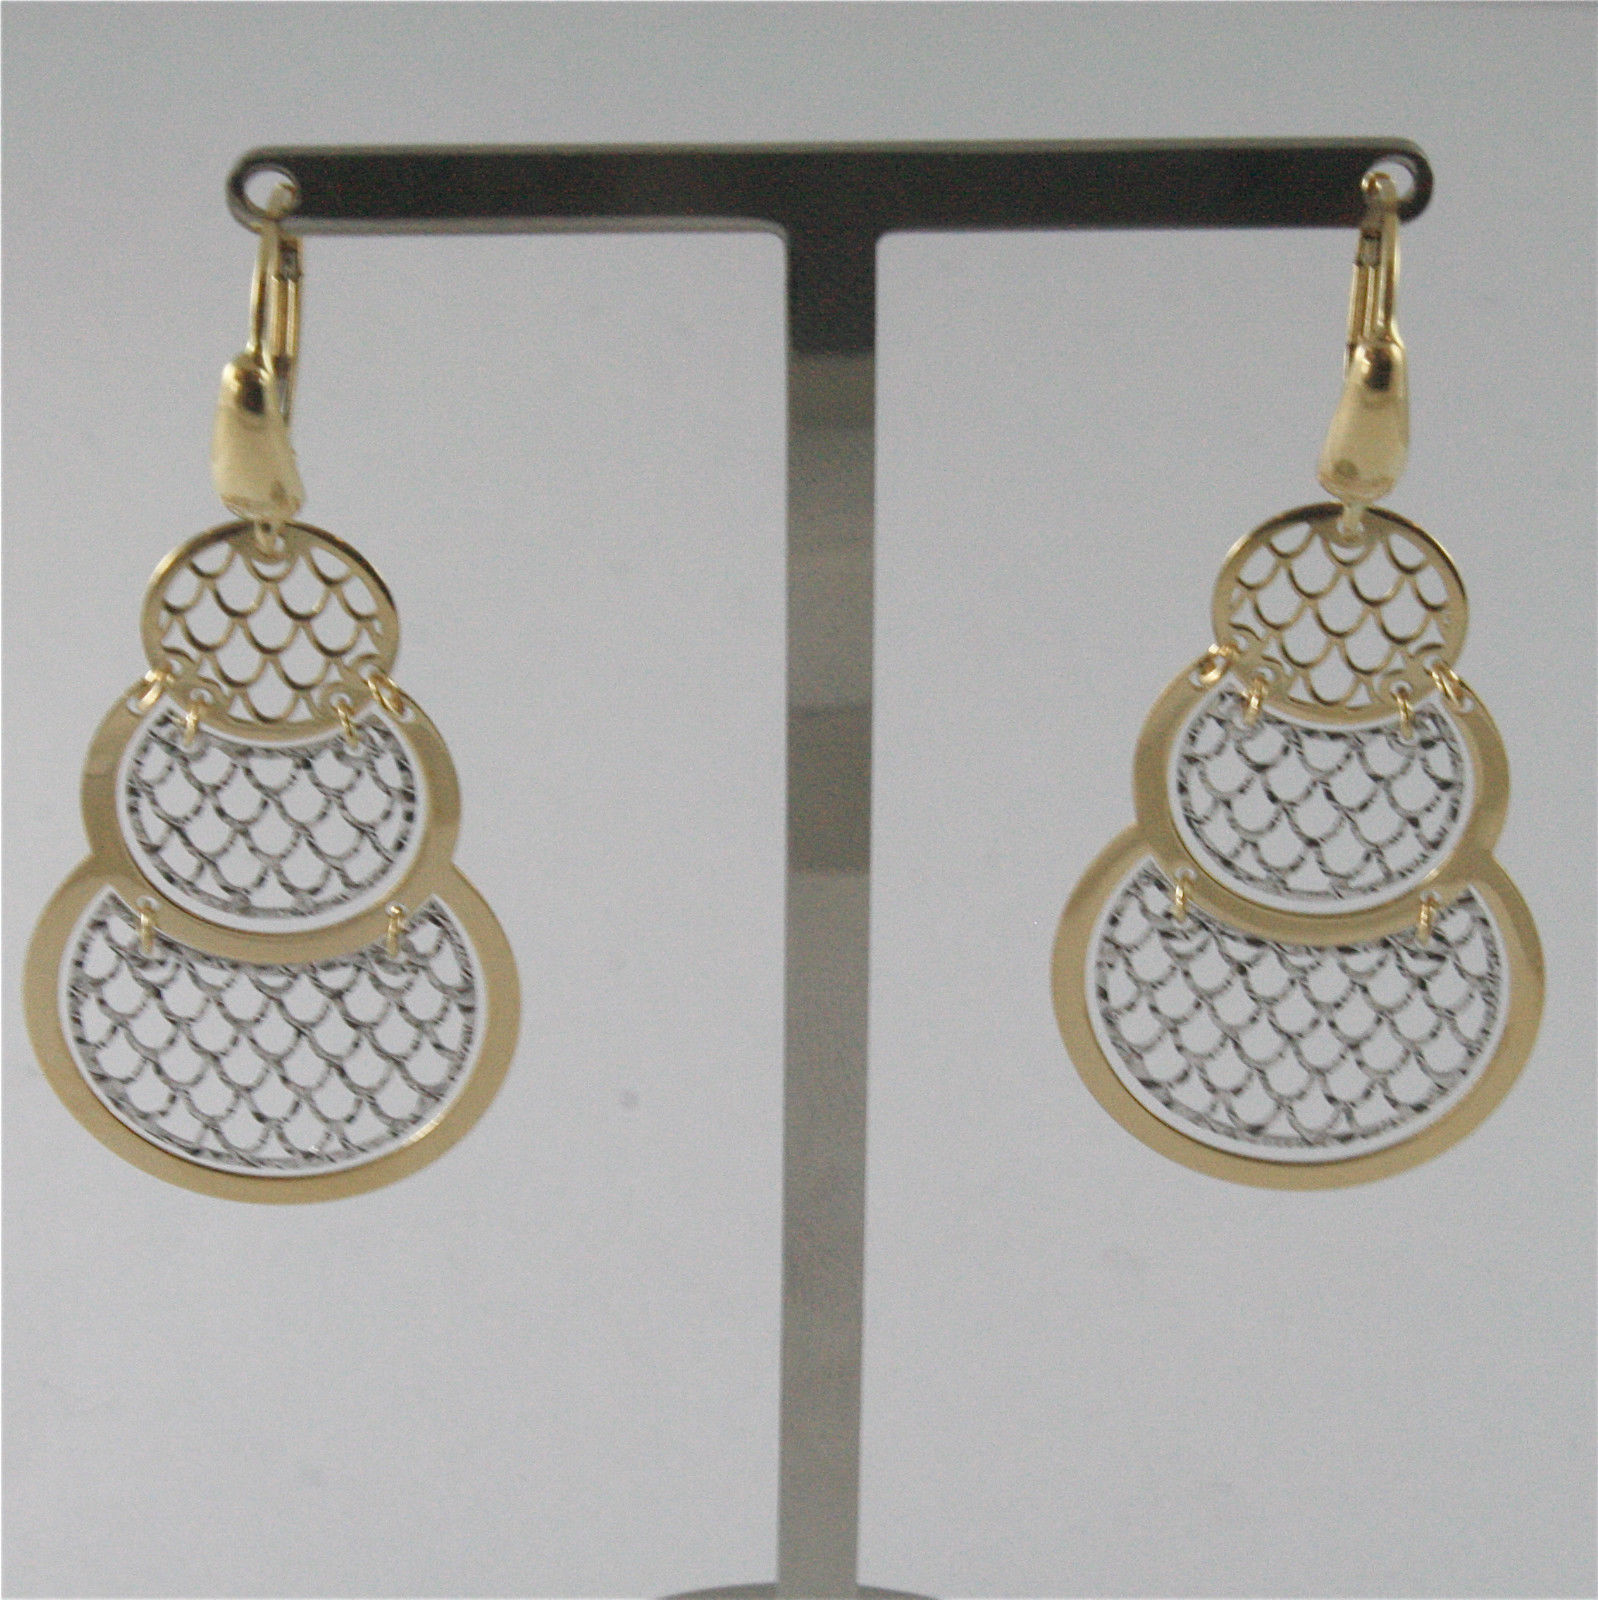 18K SOLID WHITE AND YELLOW GOLD PENDANT EARRINGS WITH NET GRID 1.97 INCHIES LONG